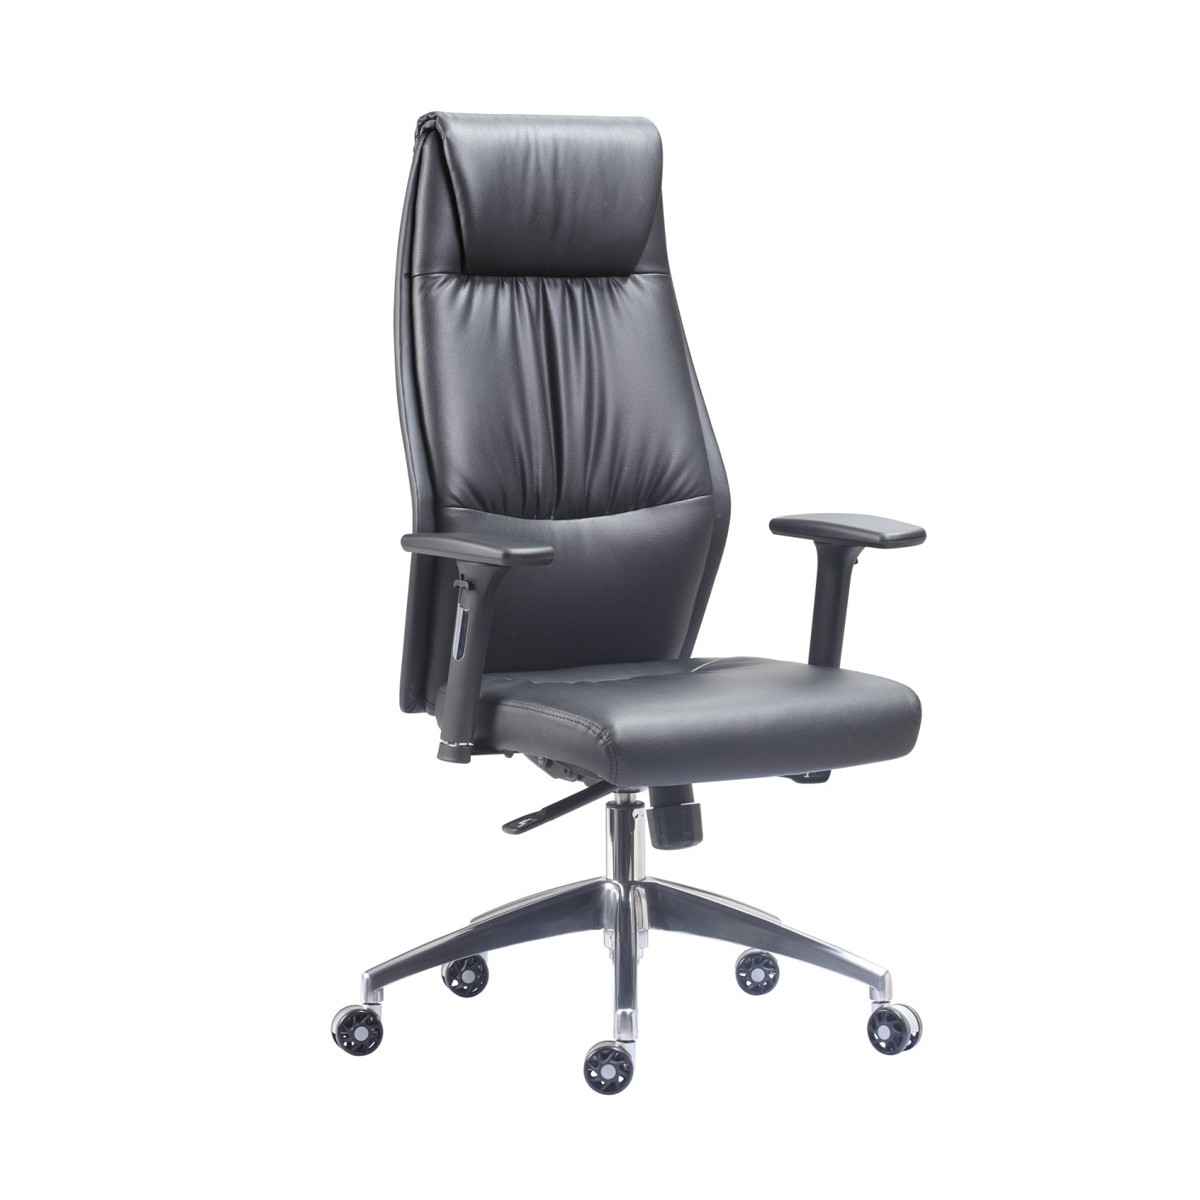 High Back Executive Chair with Height Adjustable Arms Black Faux Leather